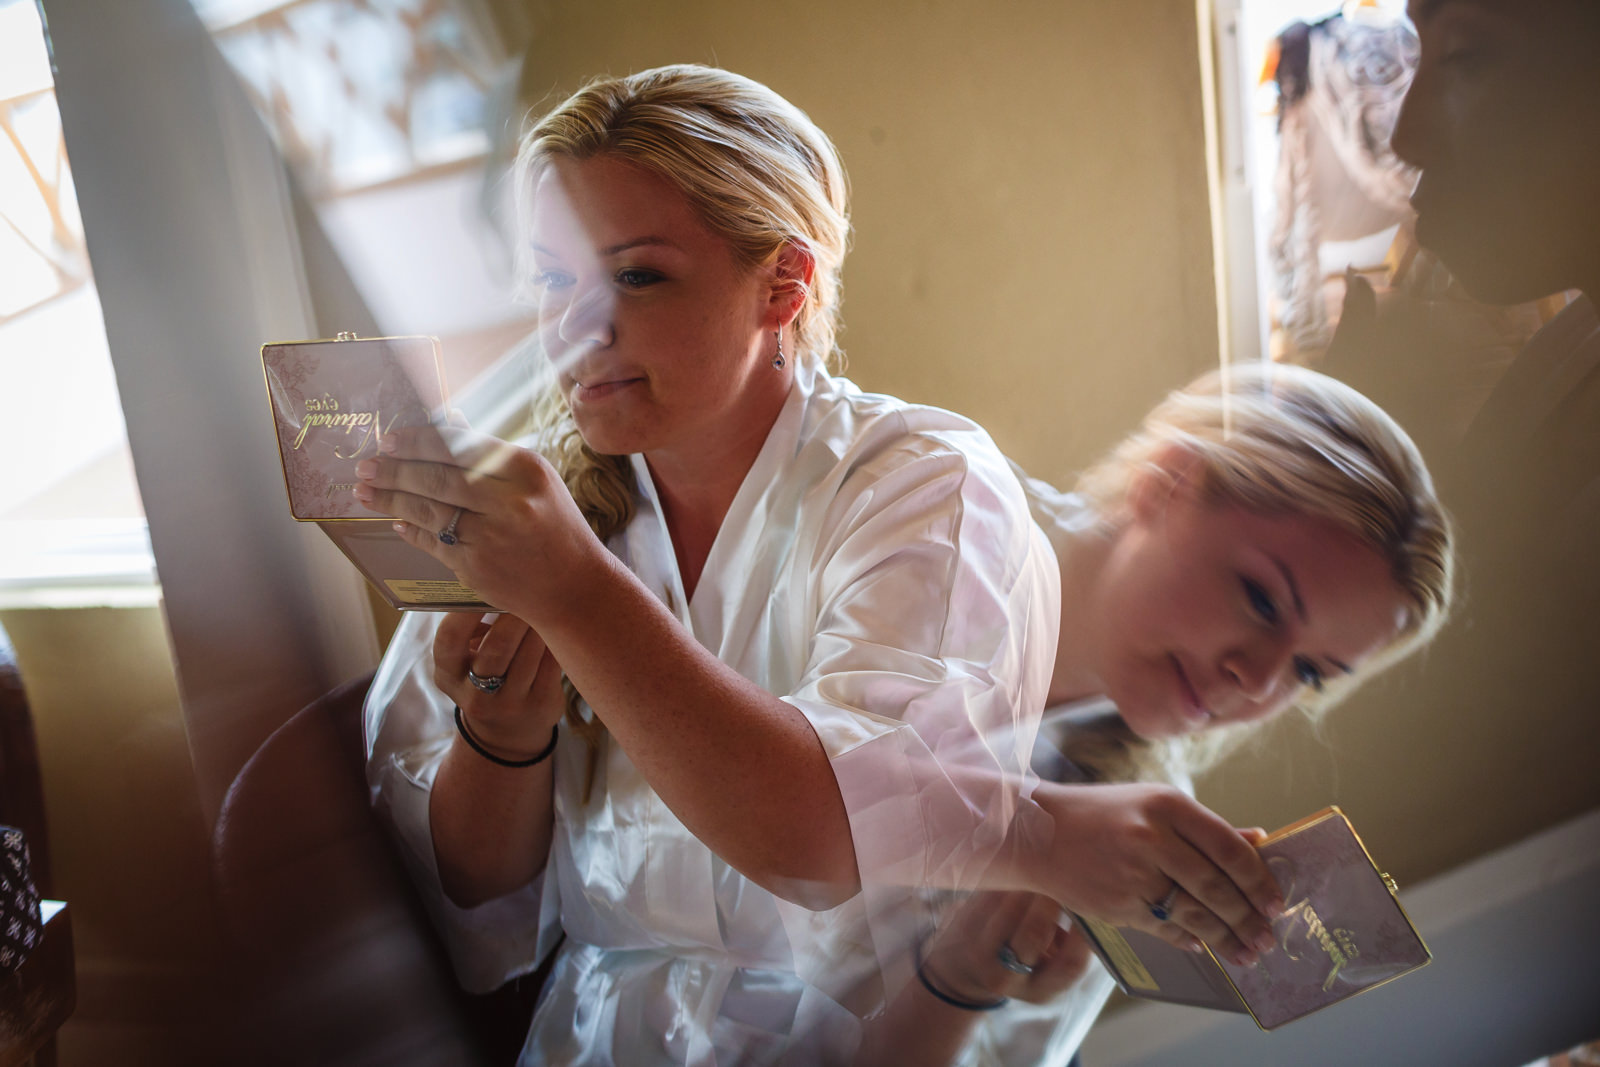 Bride looking at herself on a hand mirror all pretty and almost ready for the wedding ceremony.